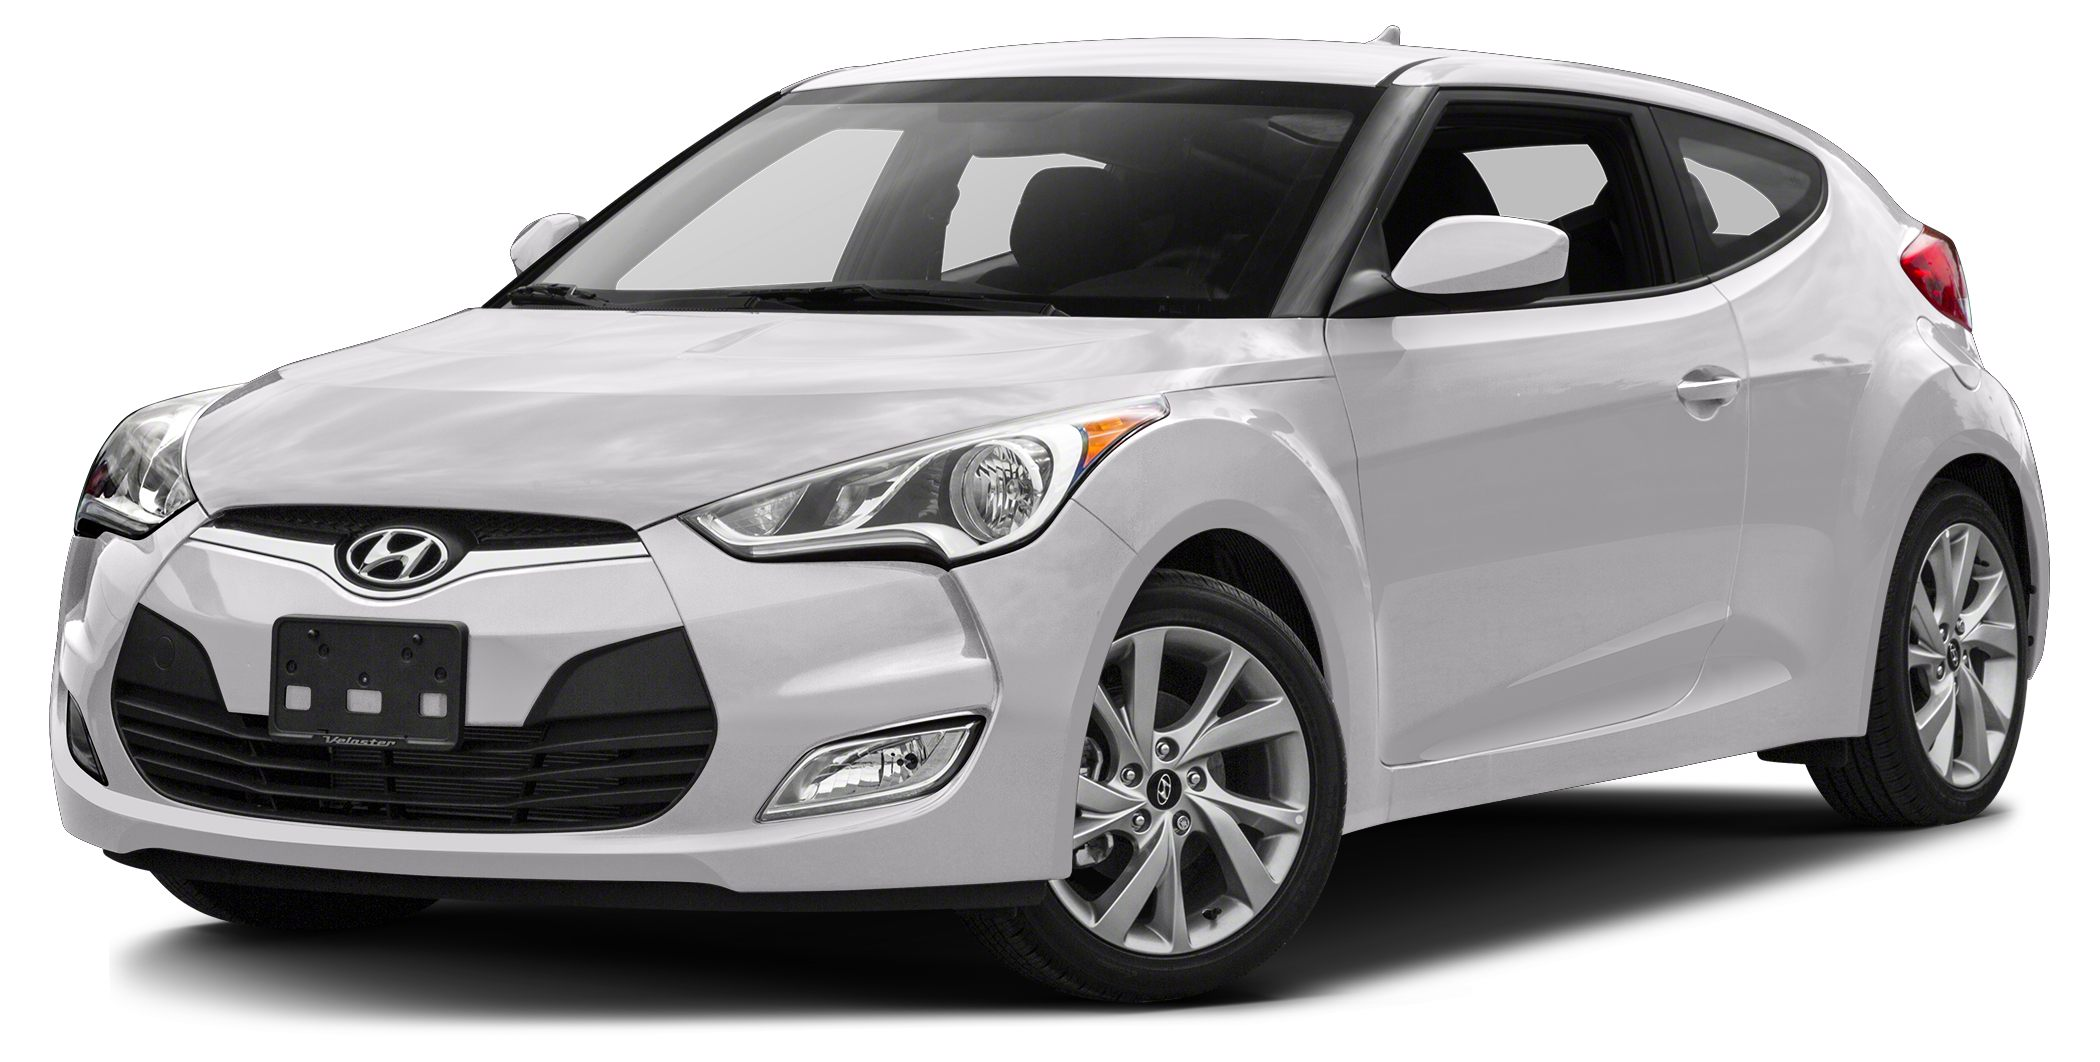 2016 Hyundai Veloster Base One Year Free Maintanence Classy White You win Creampuff This gorge